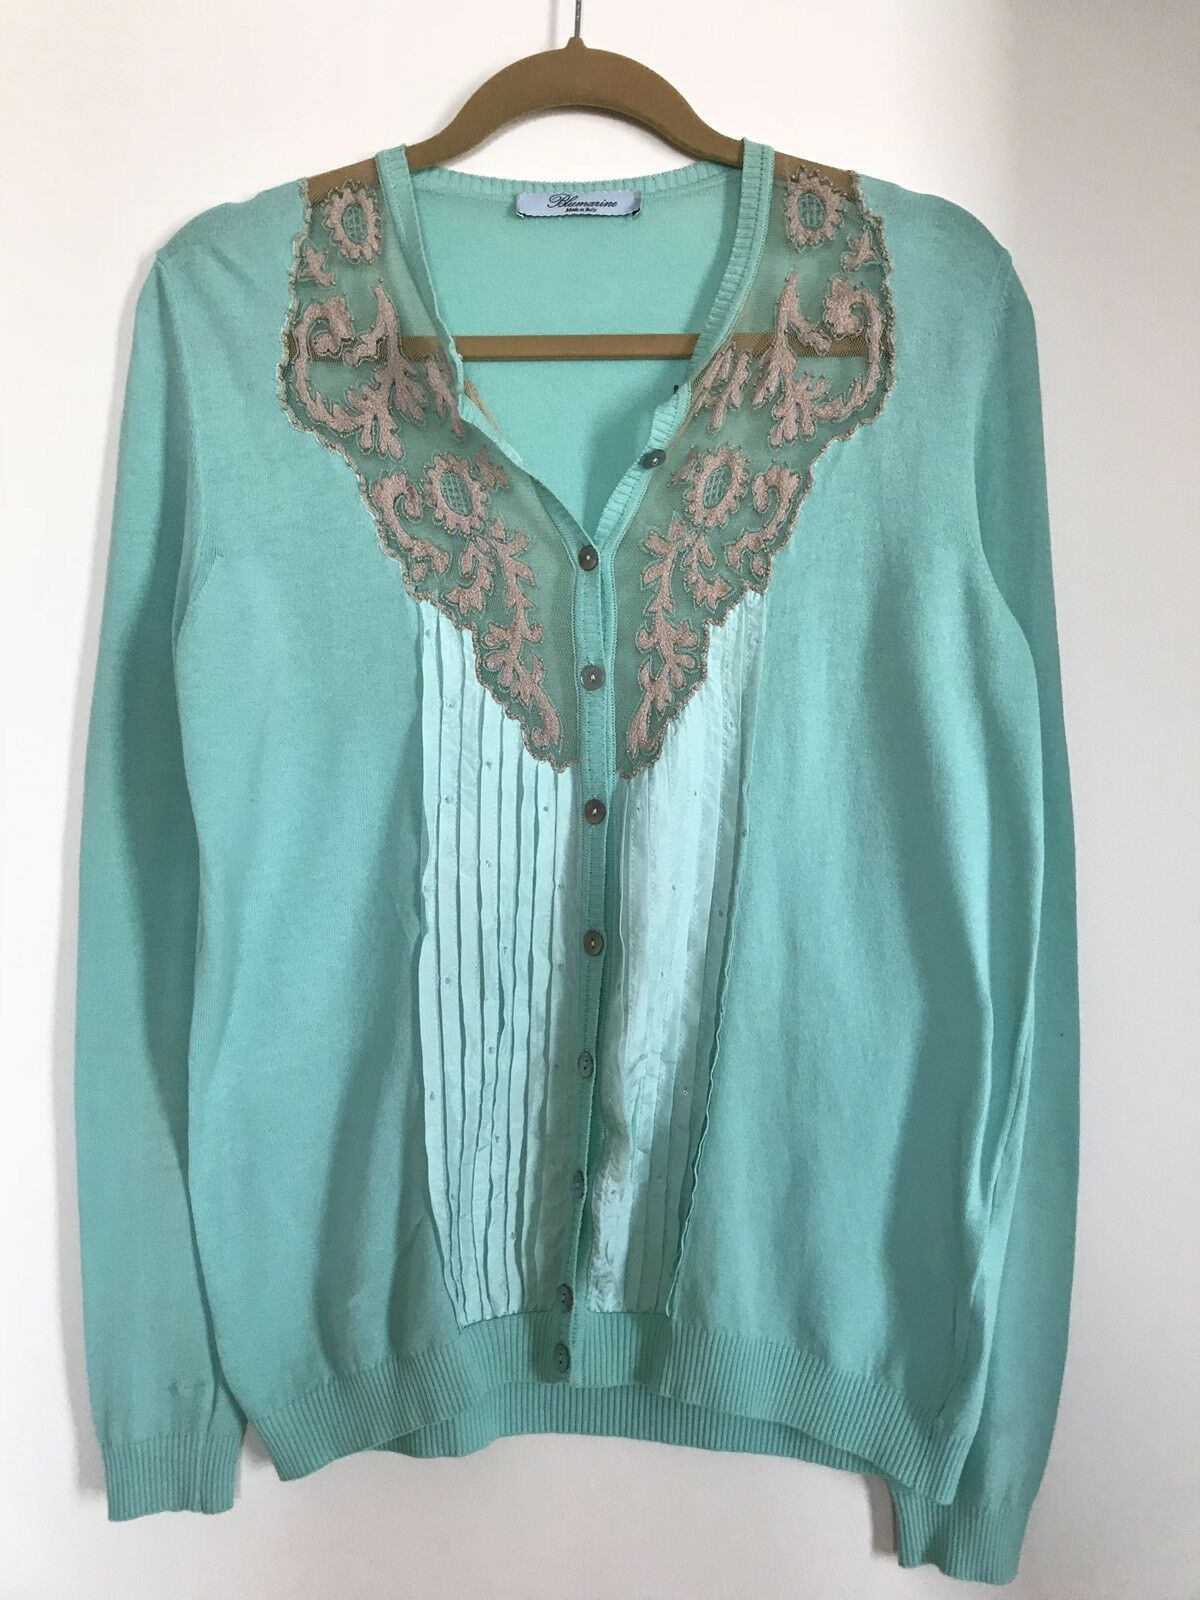 Blaumarine blouse with lace and silk